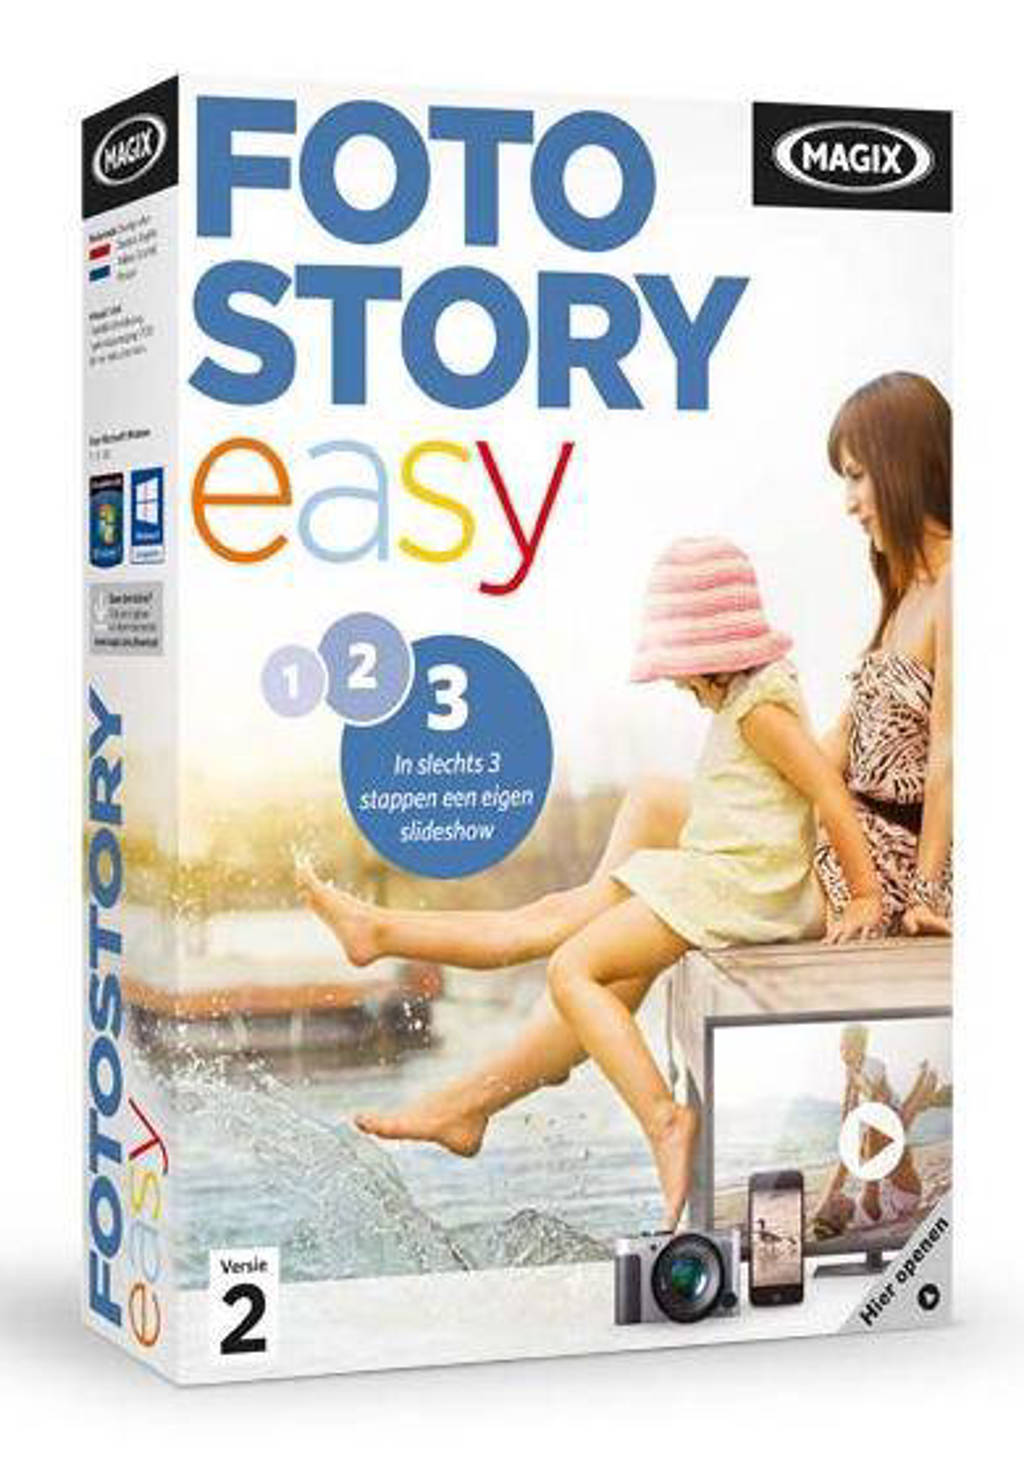 Magix fotostory easy (PC)